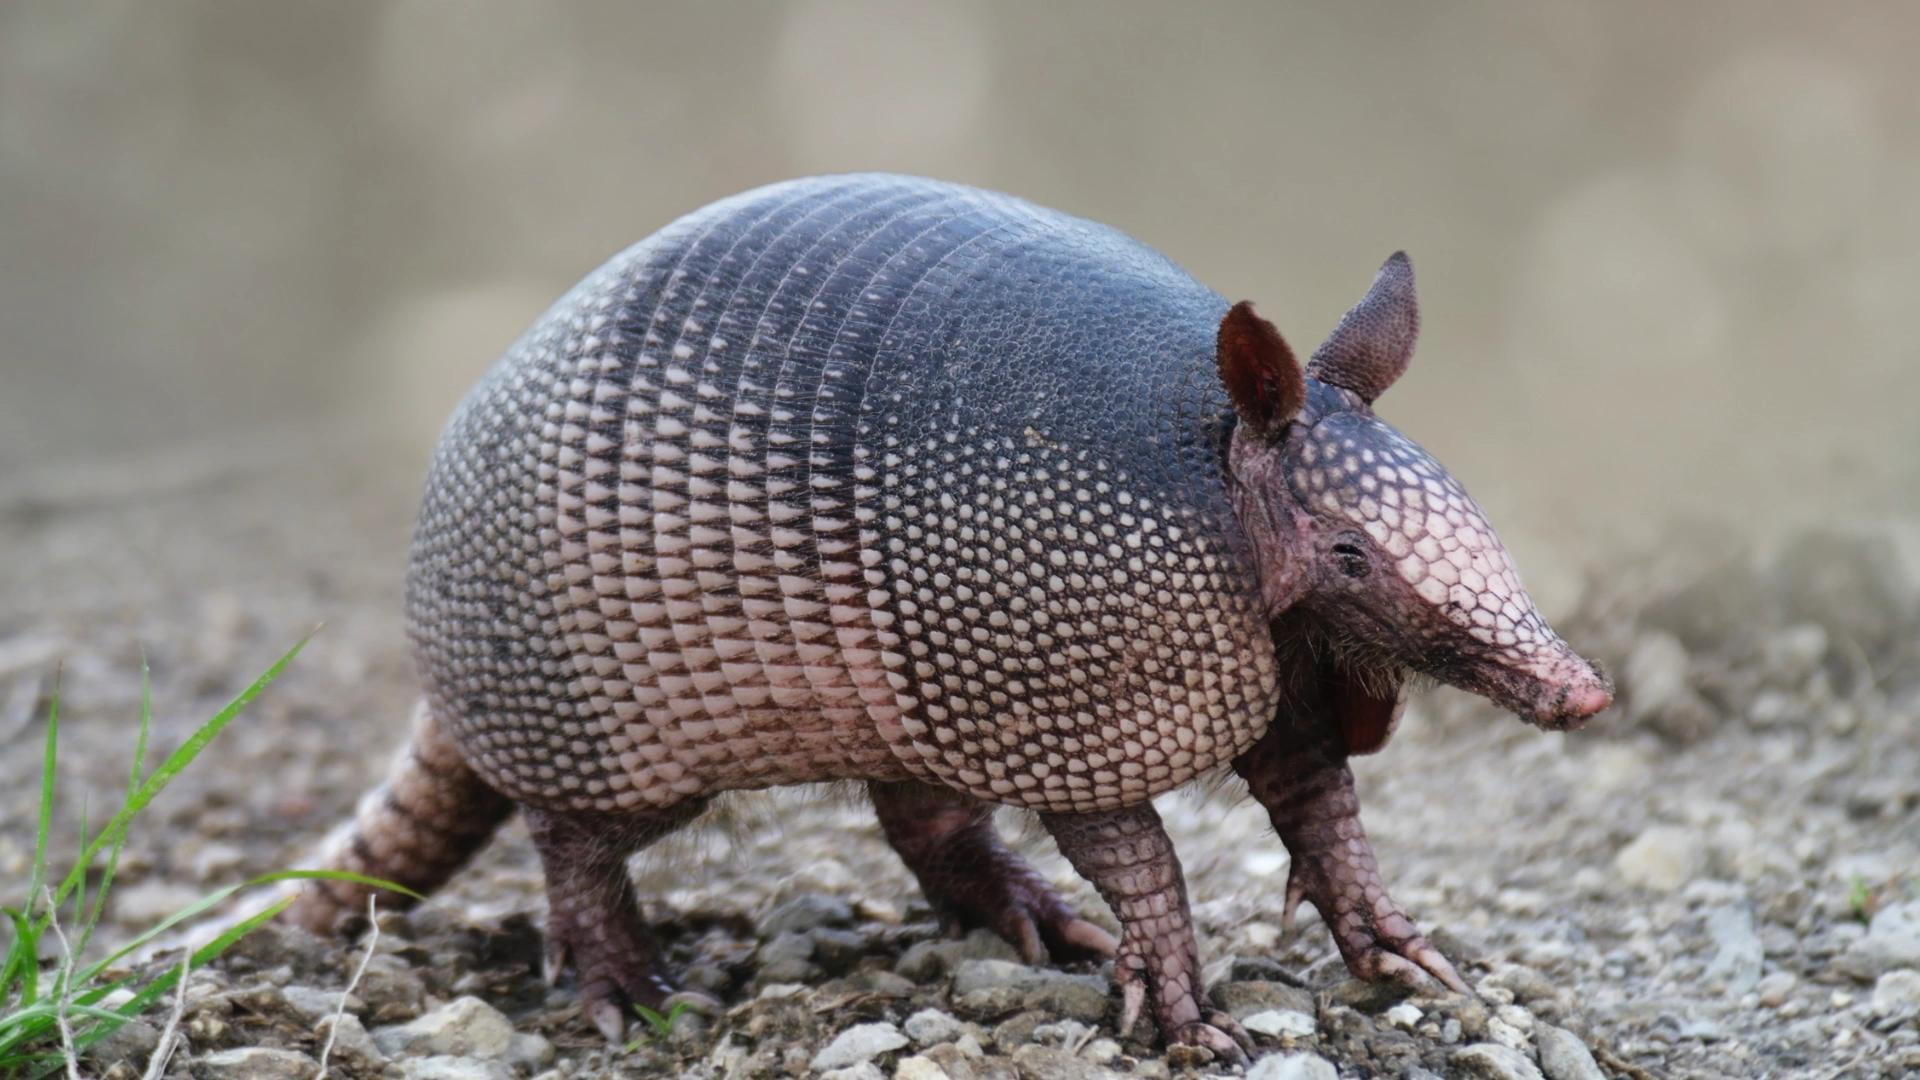 Man tries to shoot armadillo, but shoots himself instead